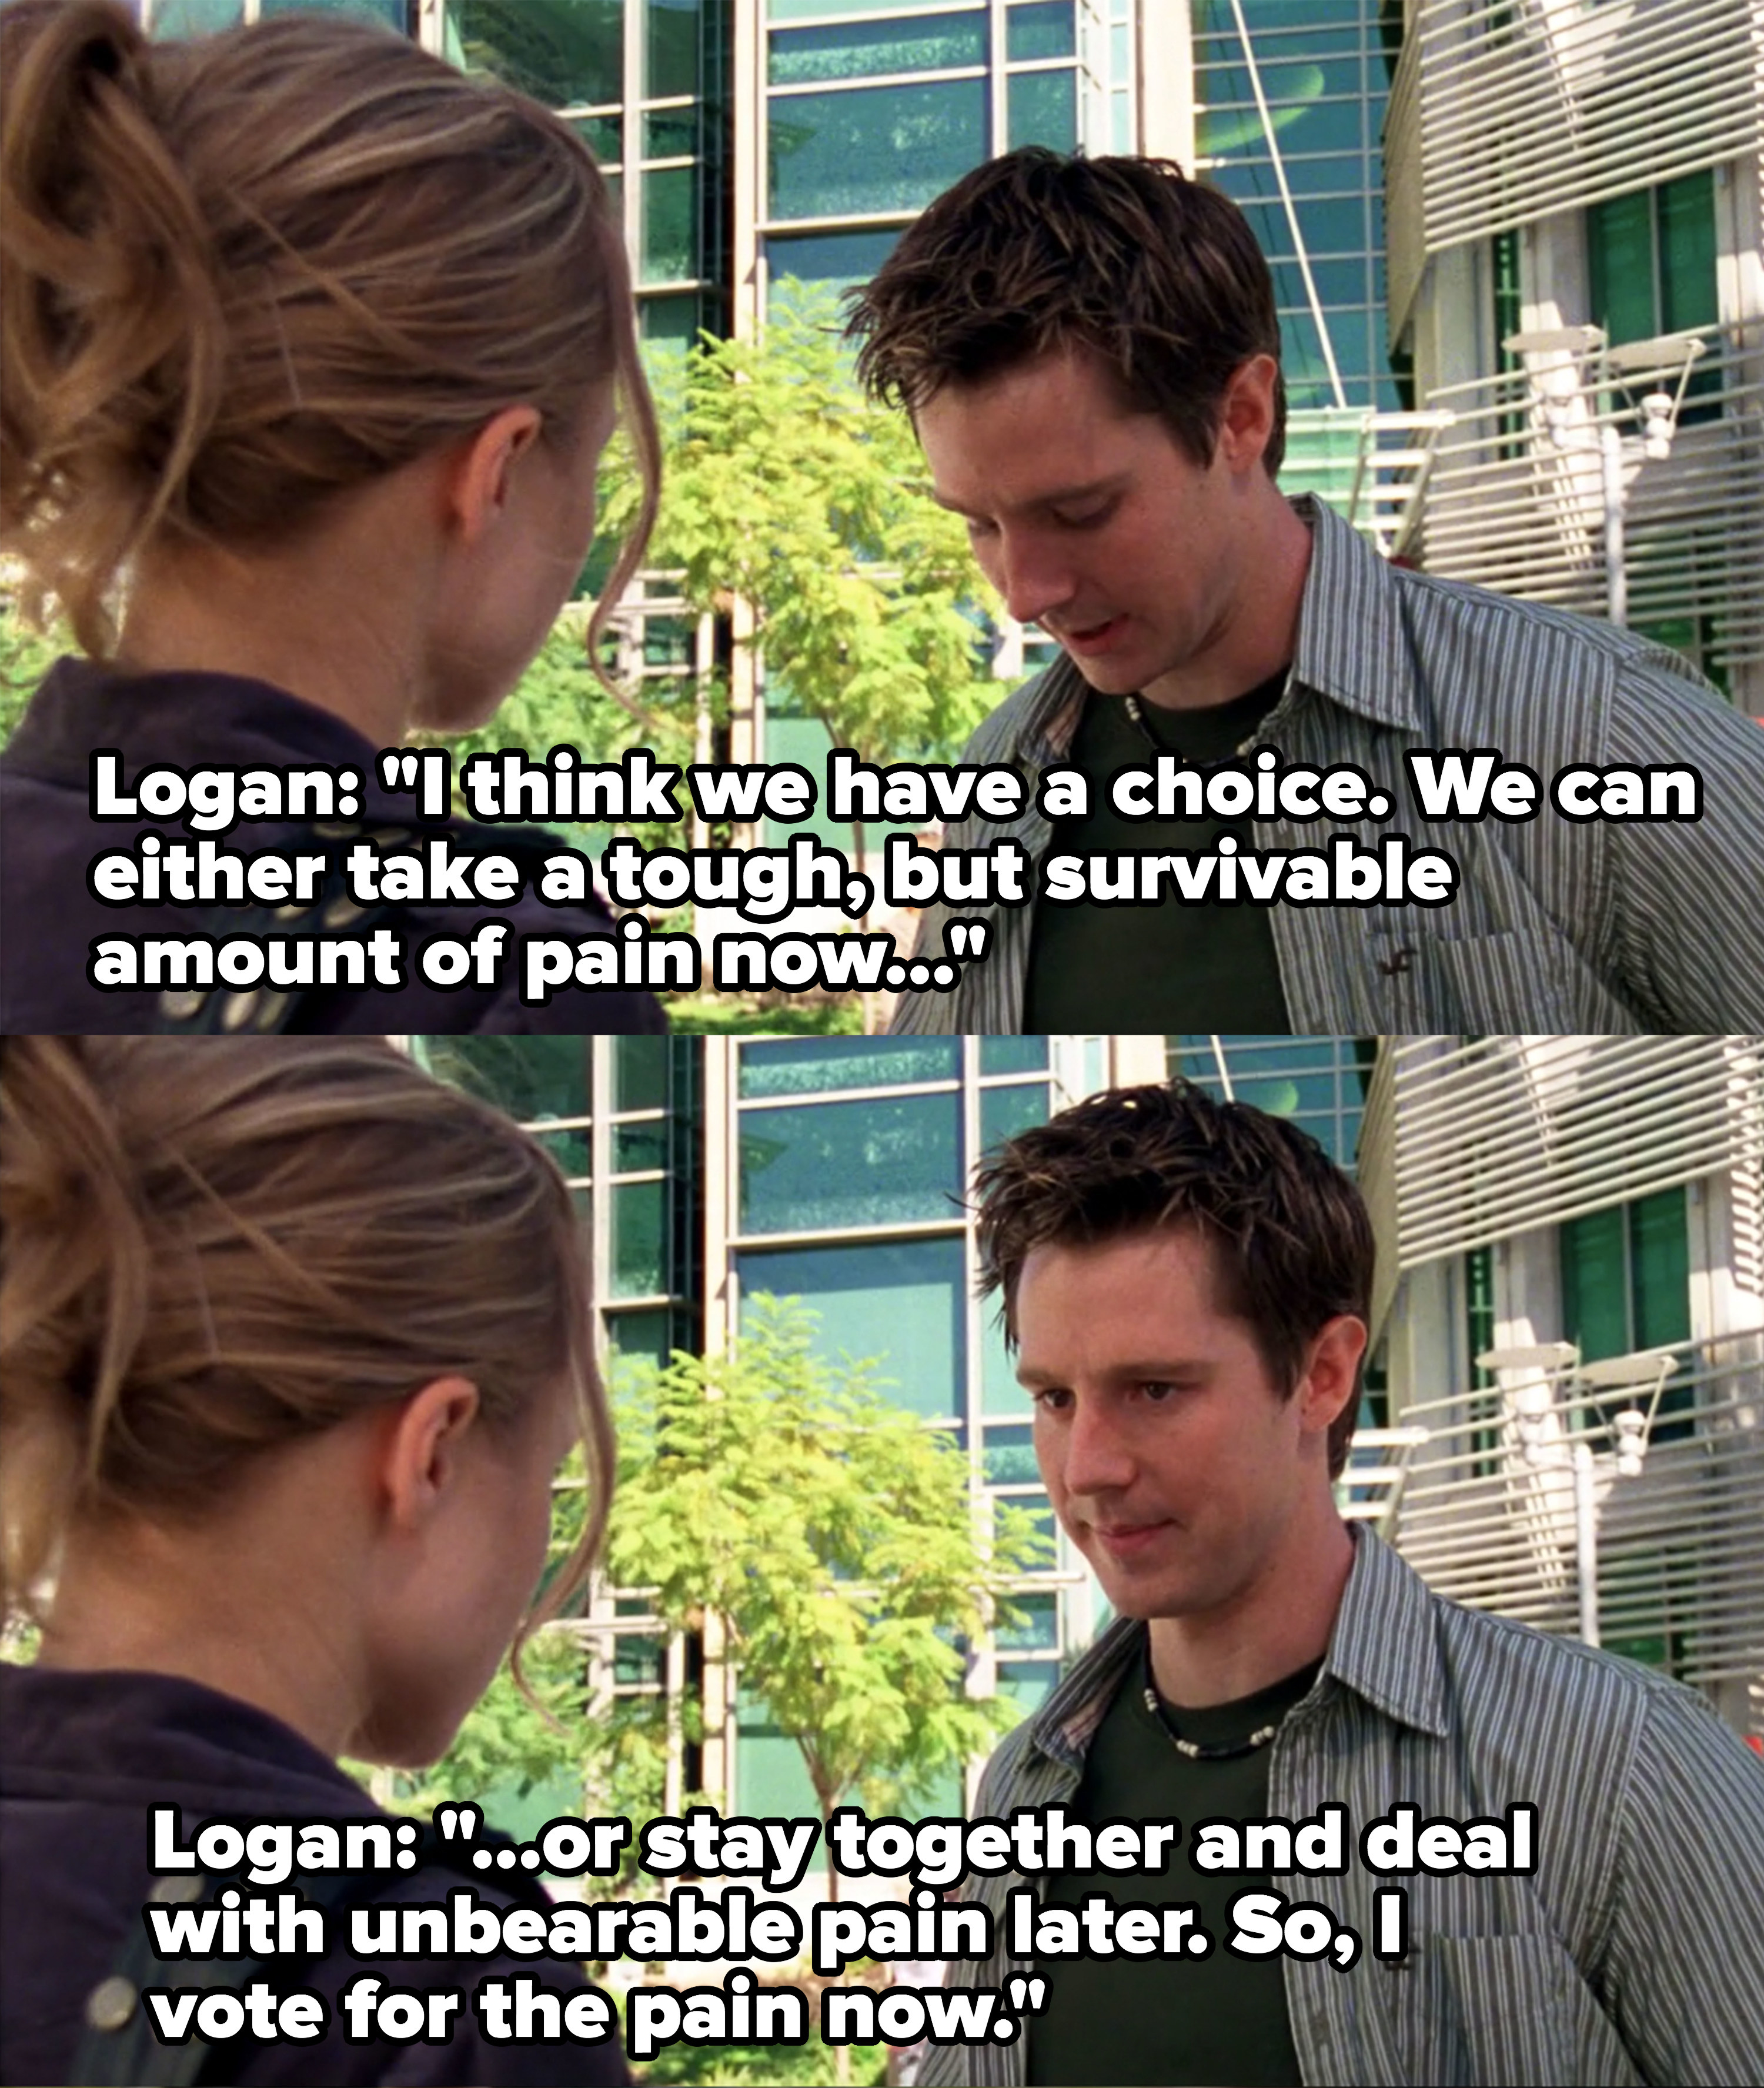 Logan tells Veronica they can either take a small amount of pain and break up now or stay together and face unbearable pain later